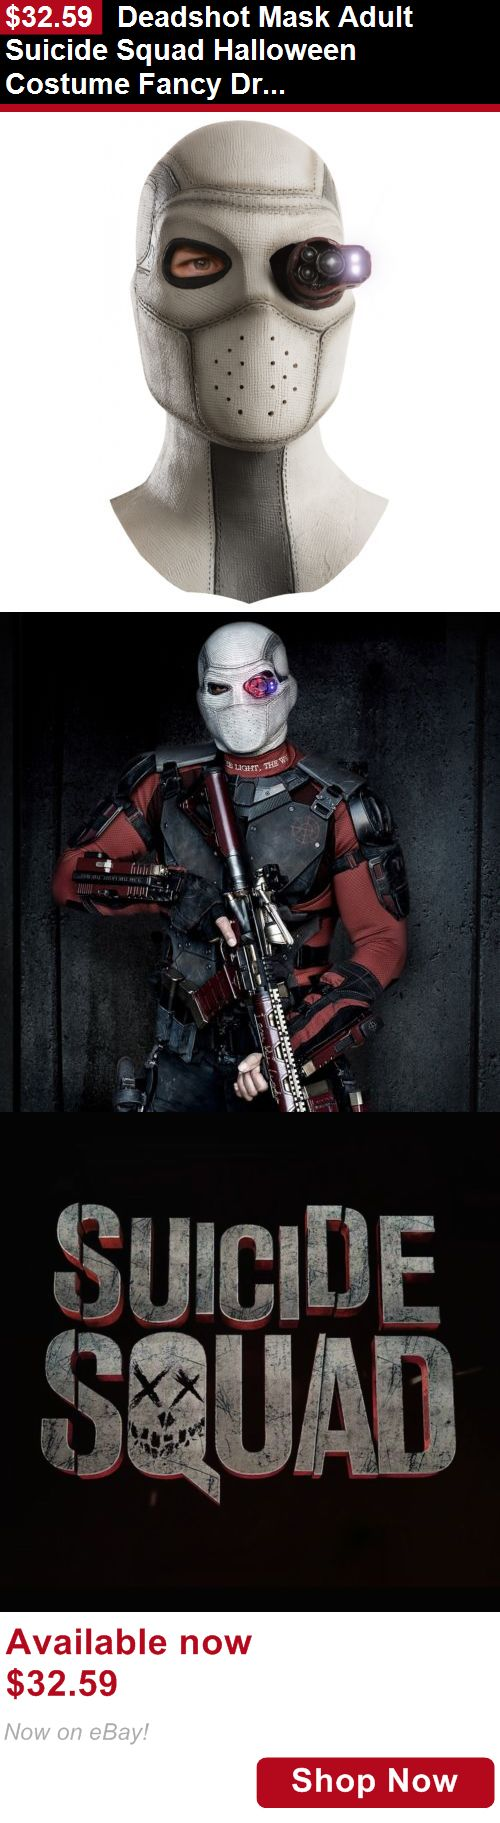 Costumes and reenactment attire: Deadshot Mask Adult Suicide Squad Halloween Costume Fancy Dress BUY IT NOW ONLY: $32.59